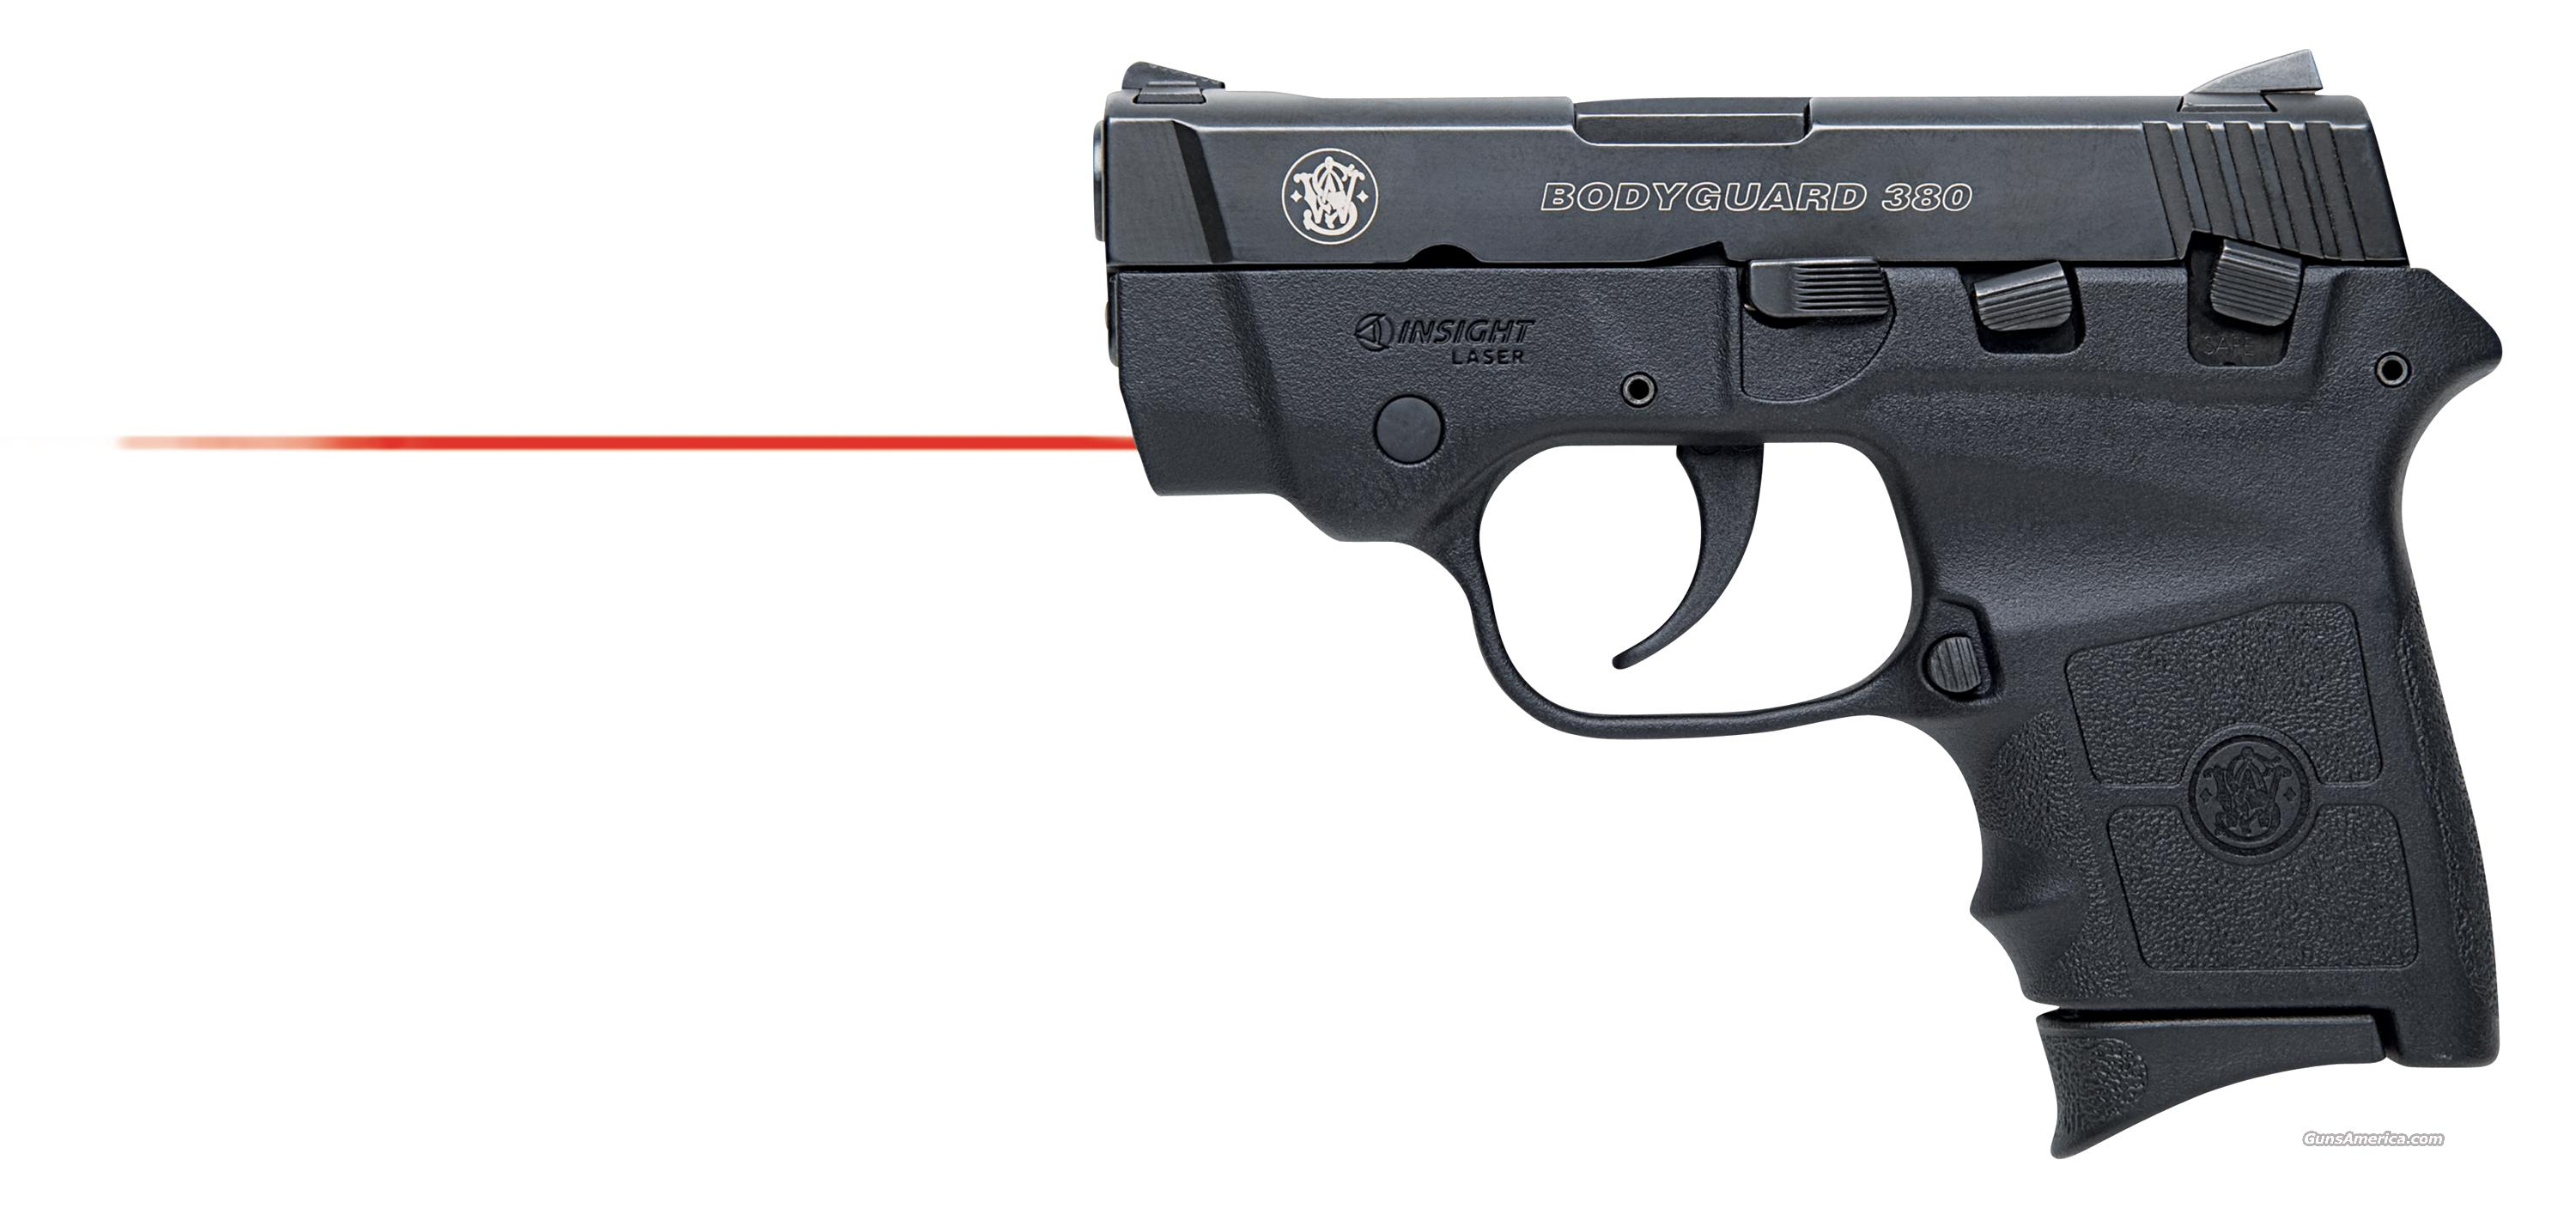 Smith & Wesson 380 Bodyguard LASER *NEW*  Guns > Pistols > Smith & Wesson Pistols - Autos > Polymer Frame